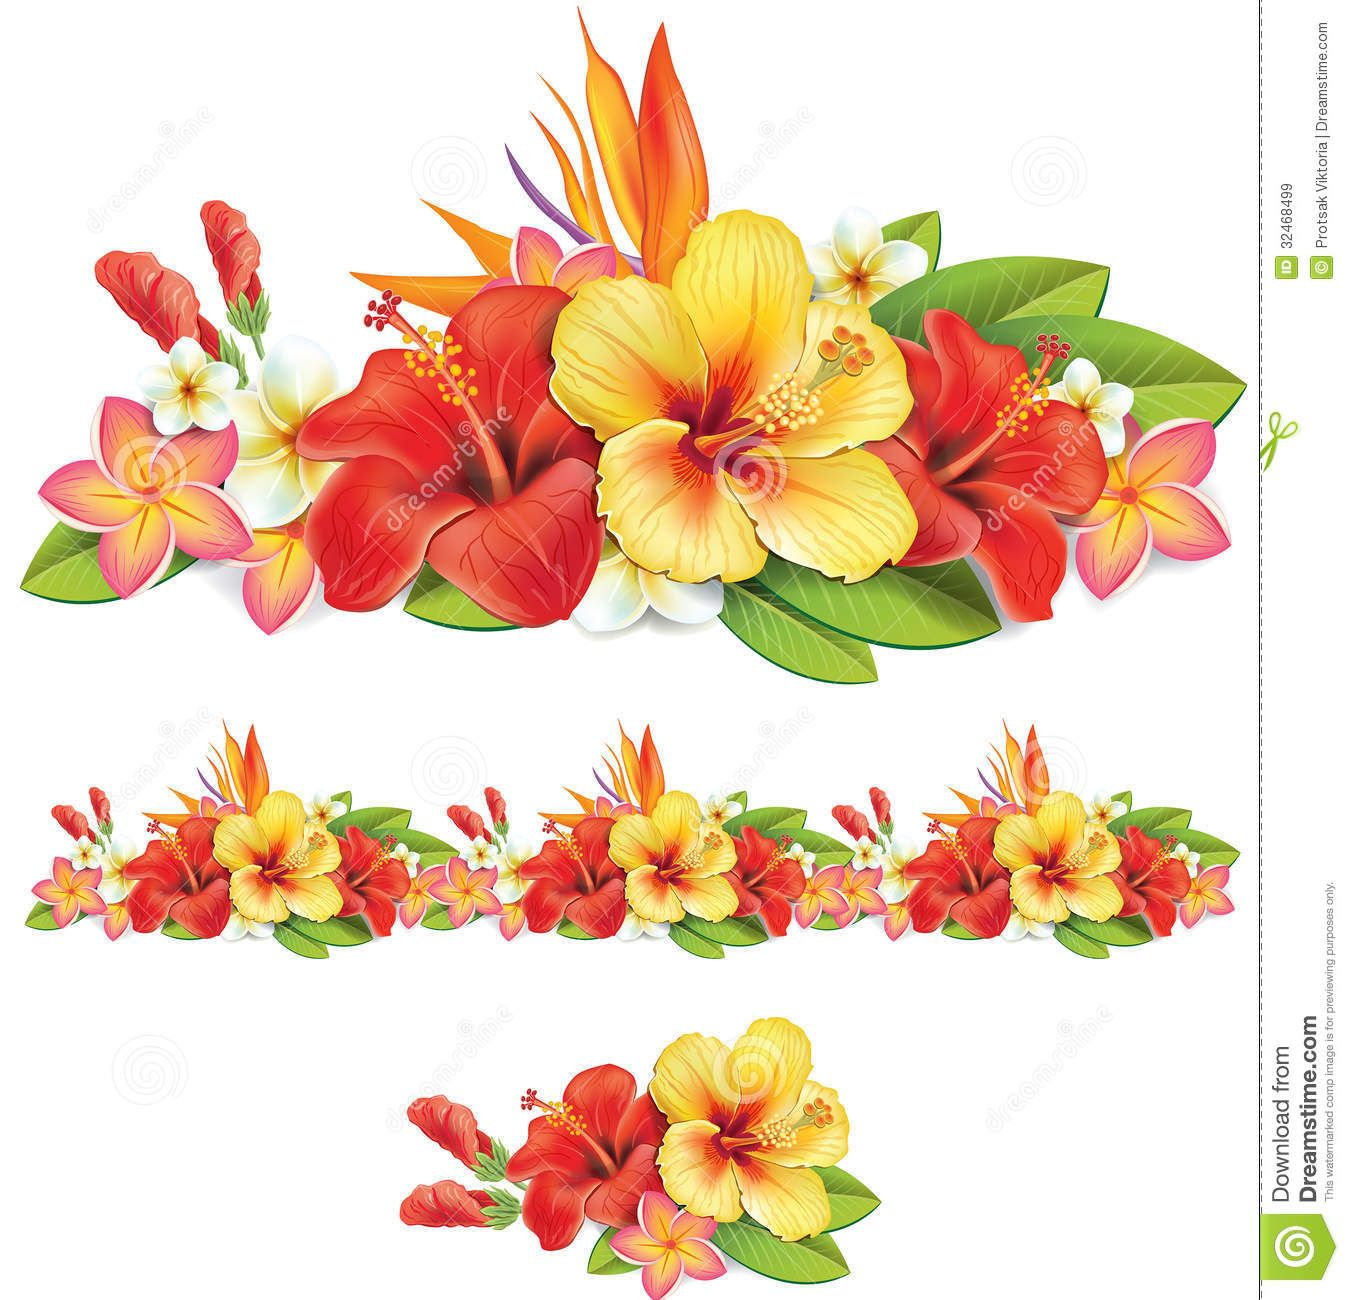 Bouquet clipart hibiscus. Garland of tropical flowers